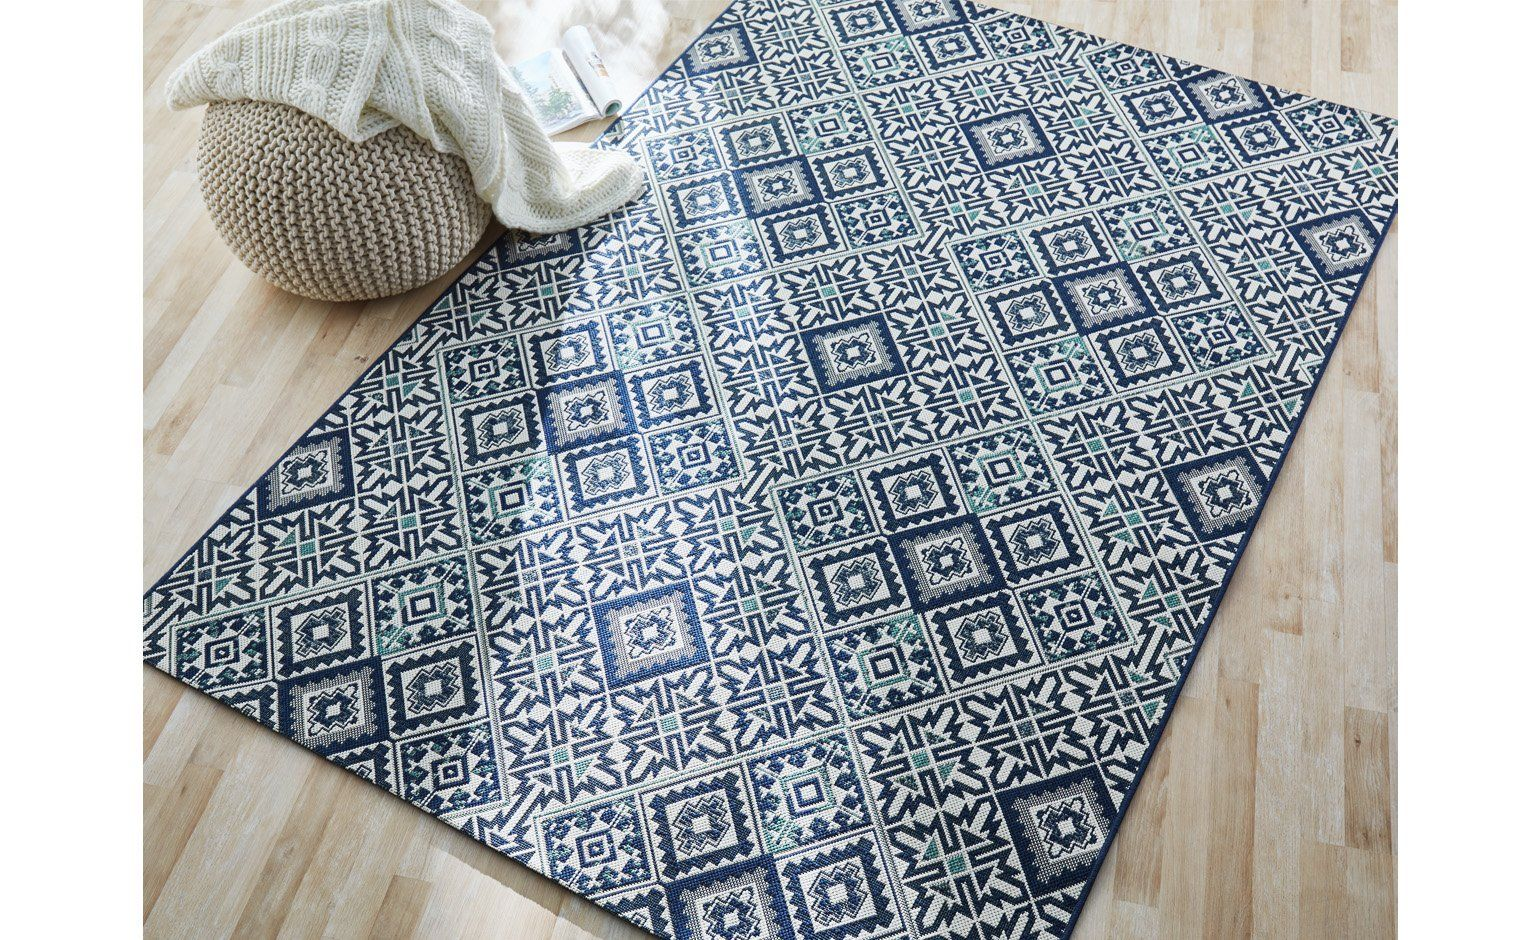 Tapis Archeo Motif Carreaux De Ciment Tapis Tapis Carreaux De Ciment Et Carreau